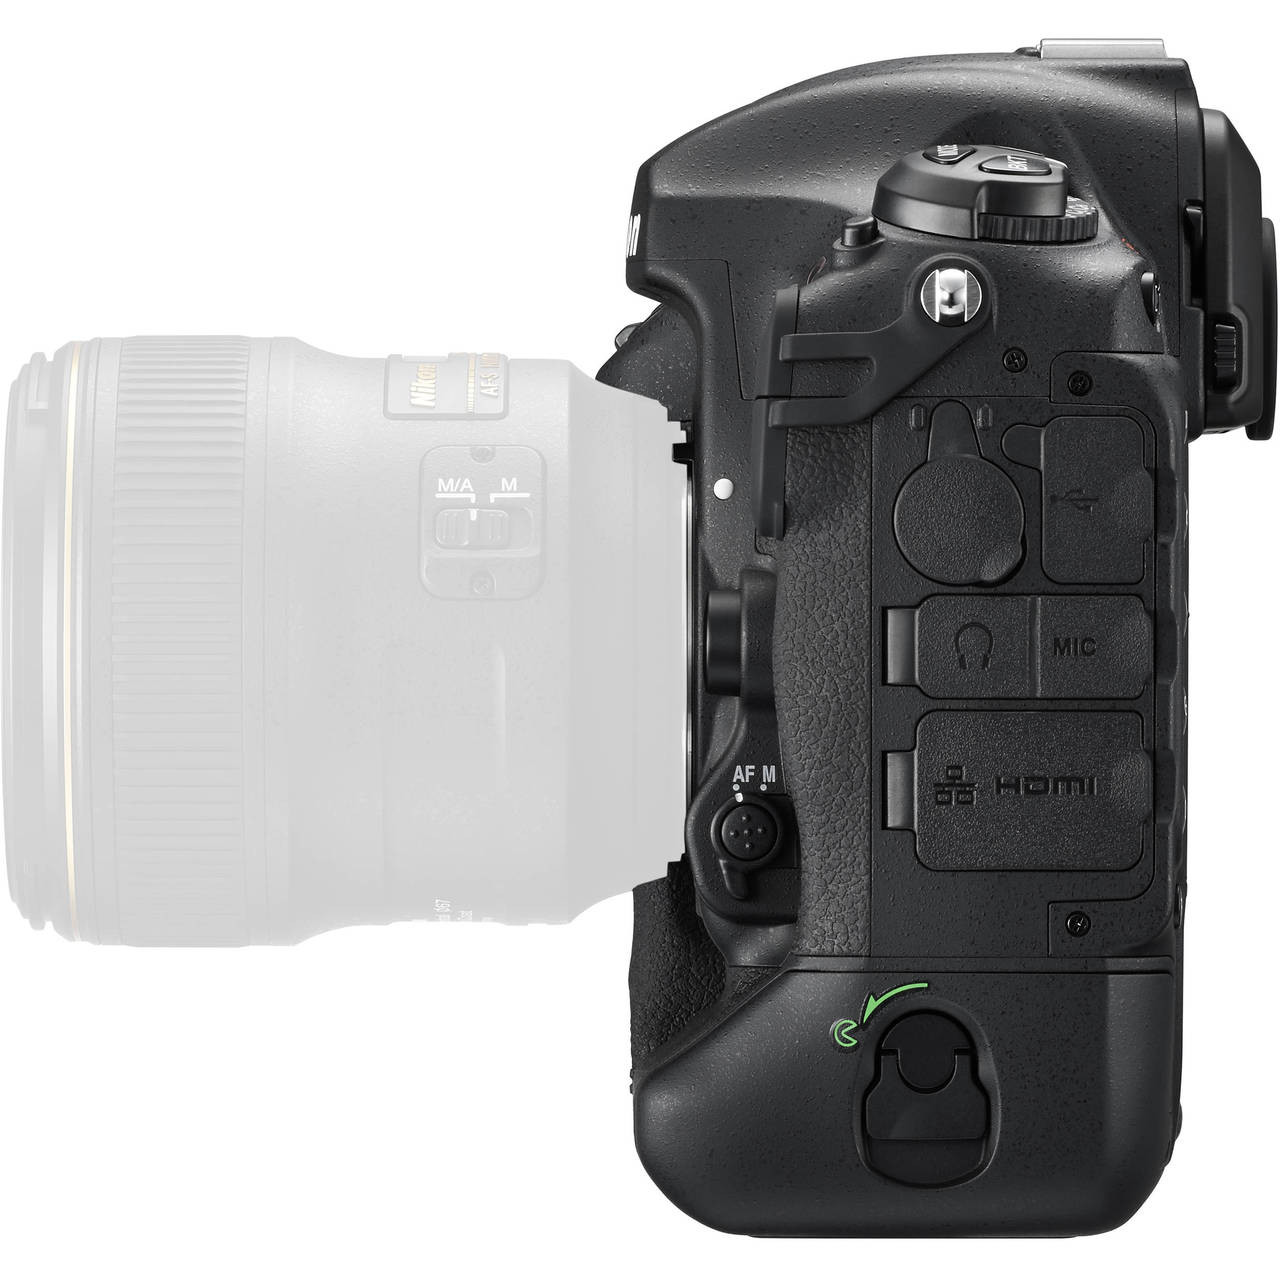 Nikon D5 Body with Dual CF Slots Left Side